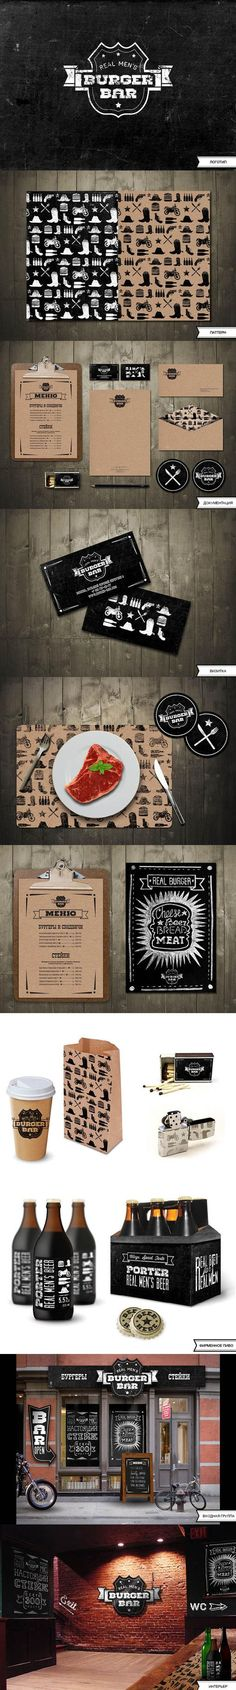 Real Men's Burger Bar by Masha Solyankina...